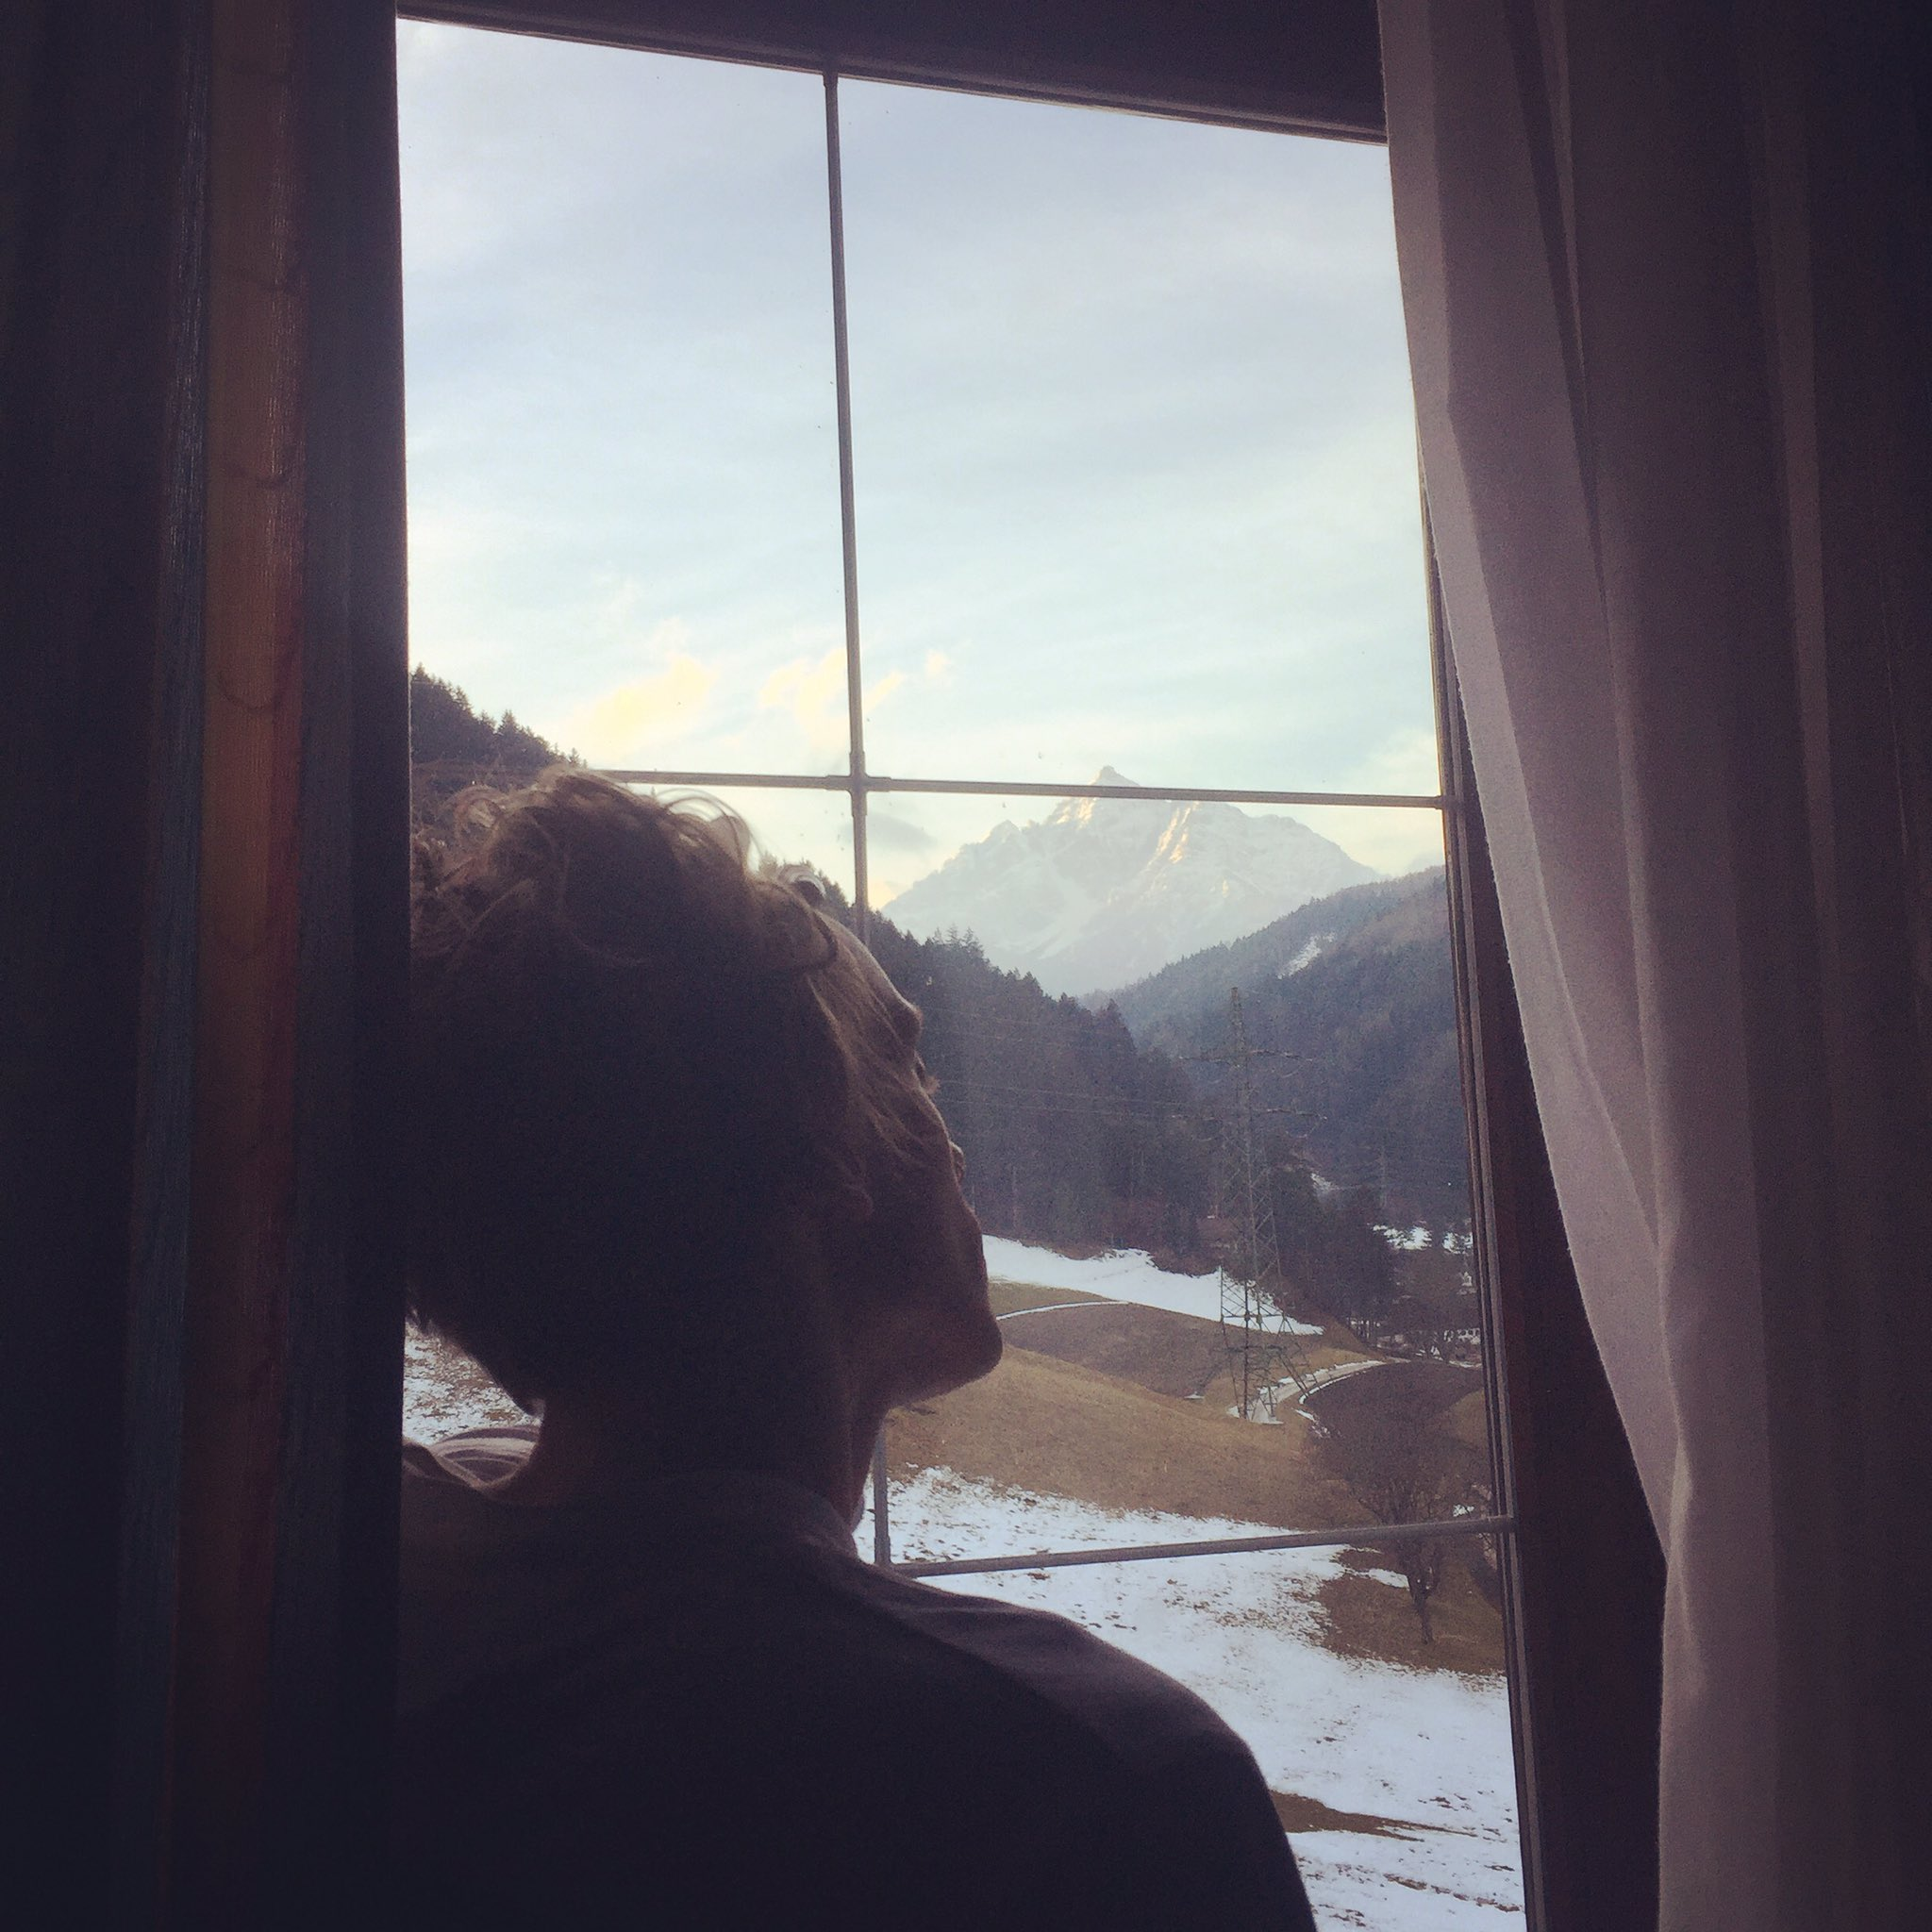 Terrible view. Air and Style Innsbruck today. 1.30pm indoor stage. Keen to slay. #airandstyle #airandstyleinnsbruck https://t.co/HZ8RuT4e31